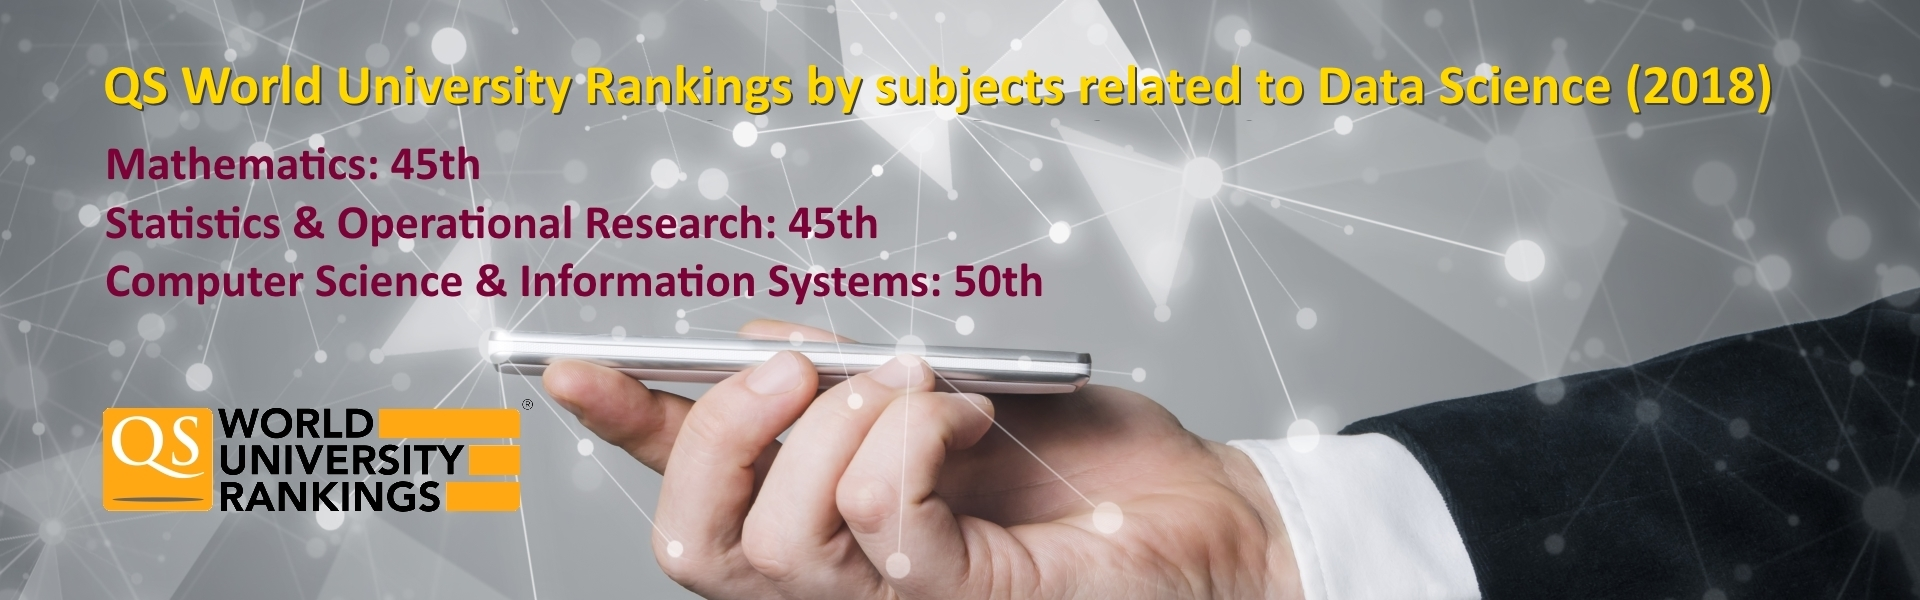 QS World University Rankings by subjects (2018)